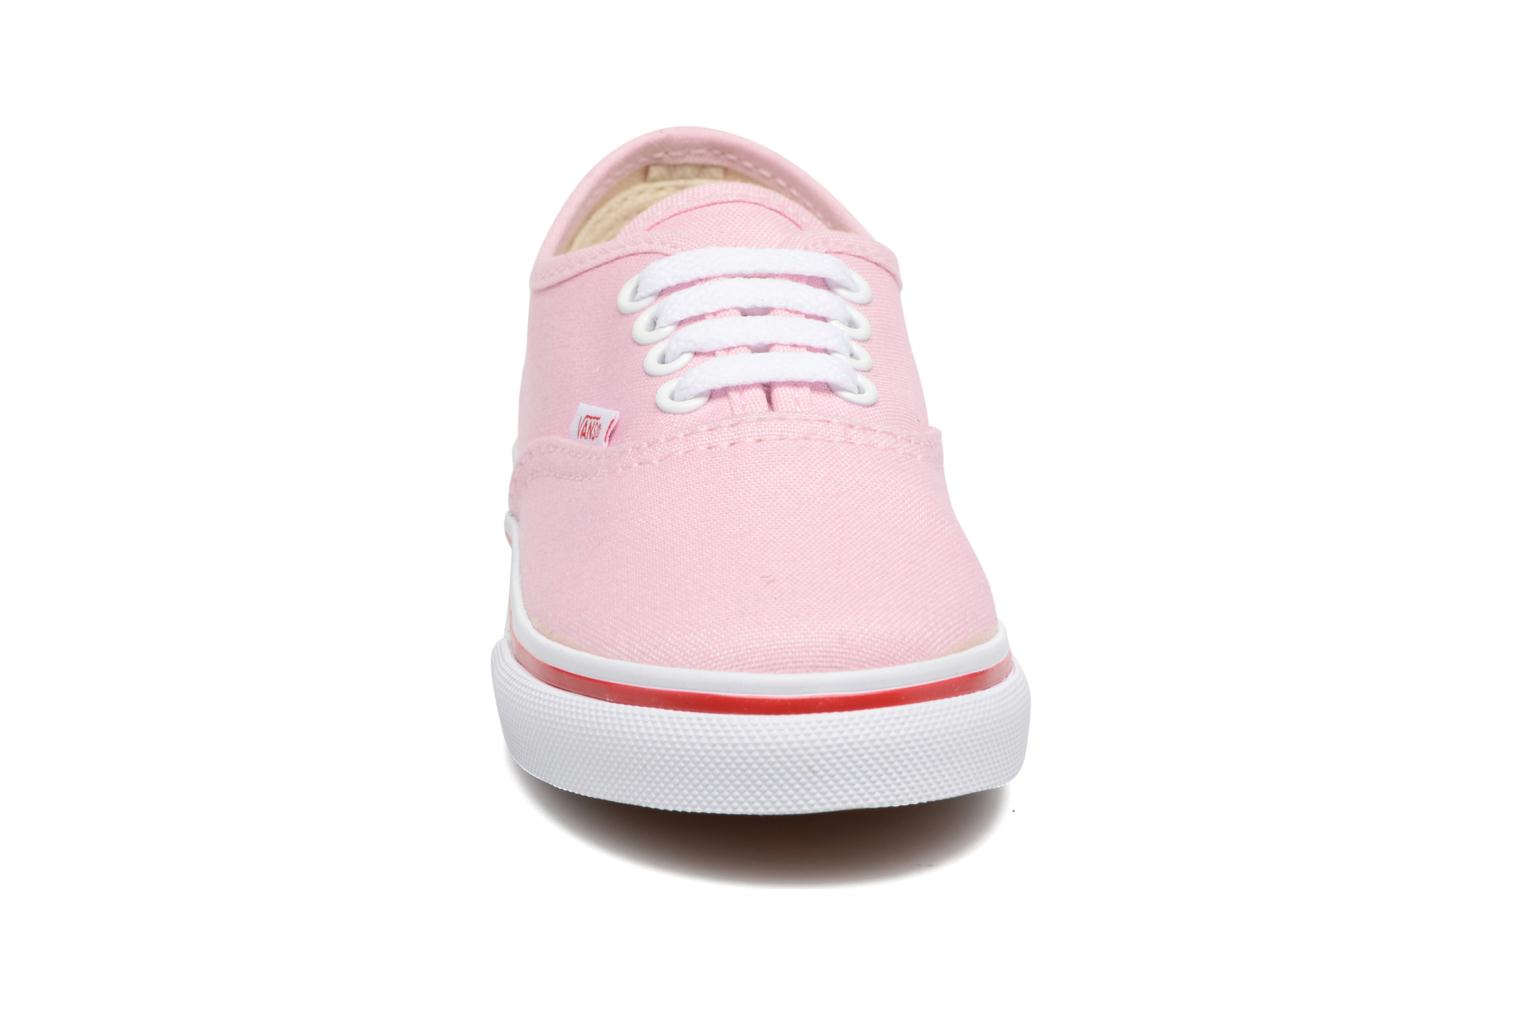 Authentic BB Pink Lady/Red